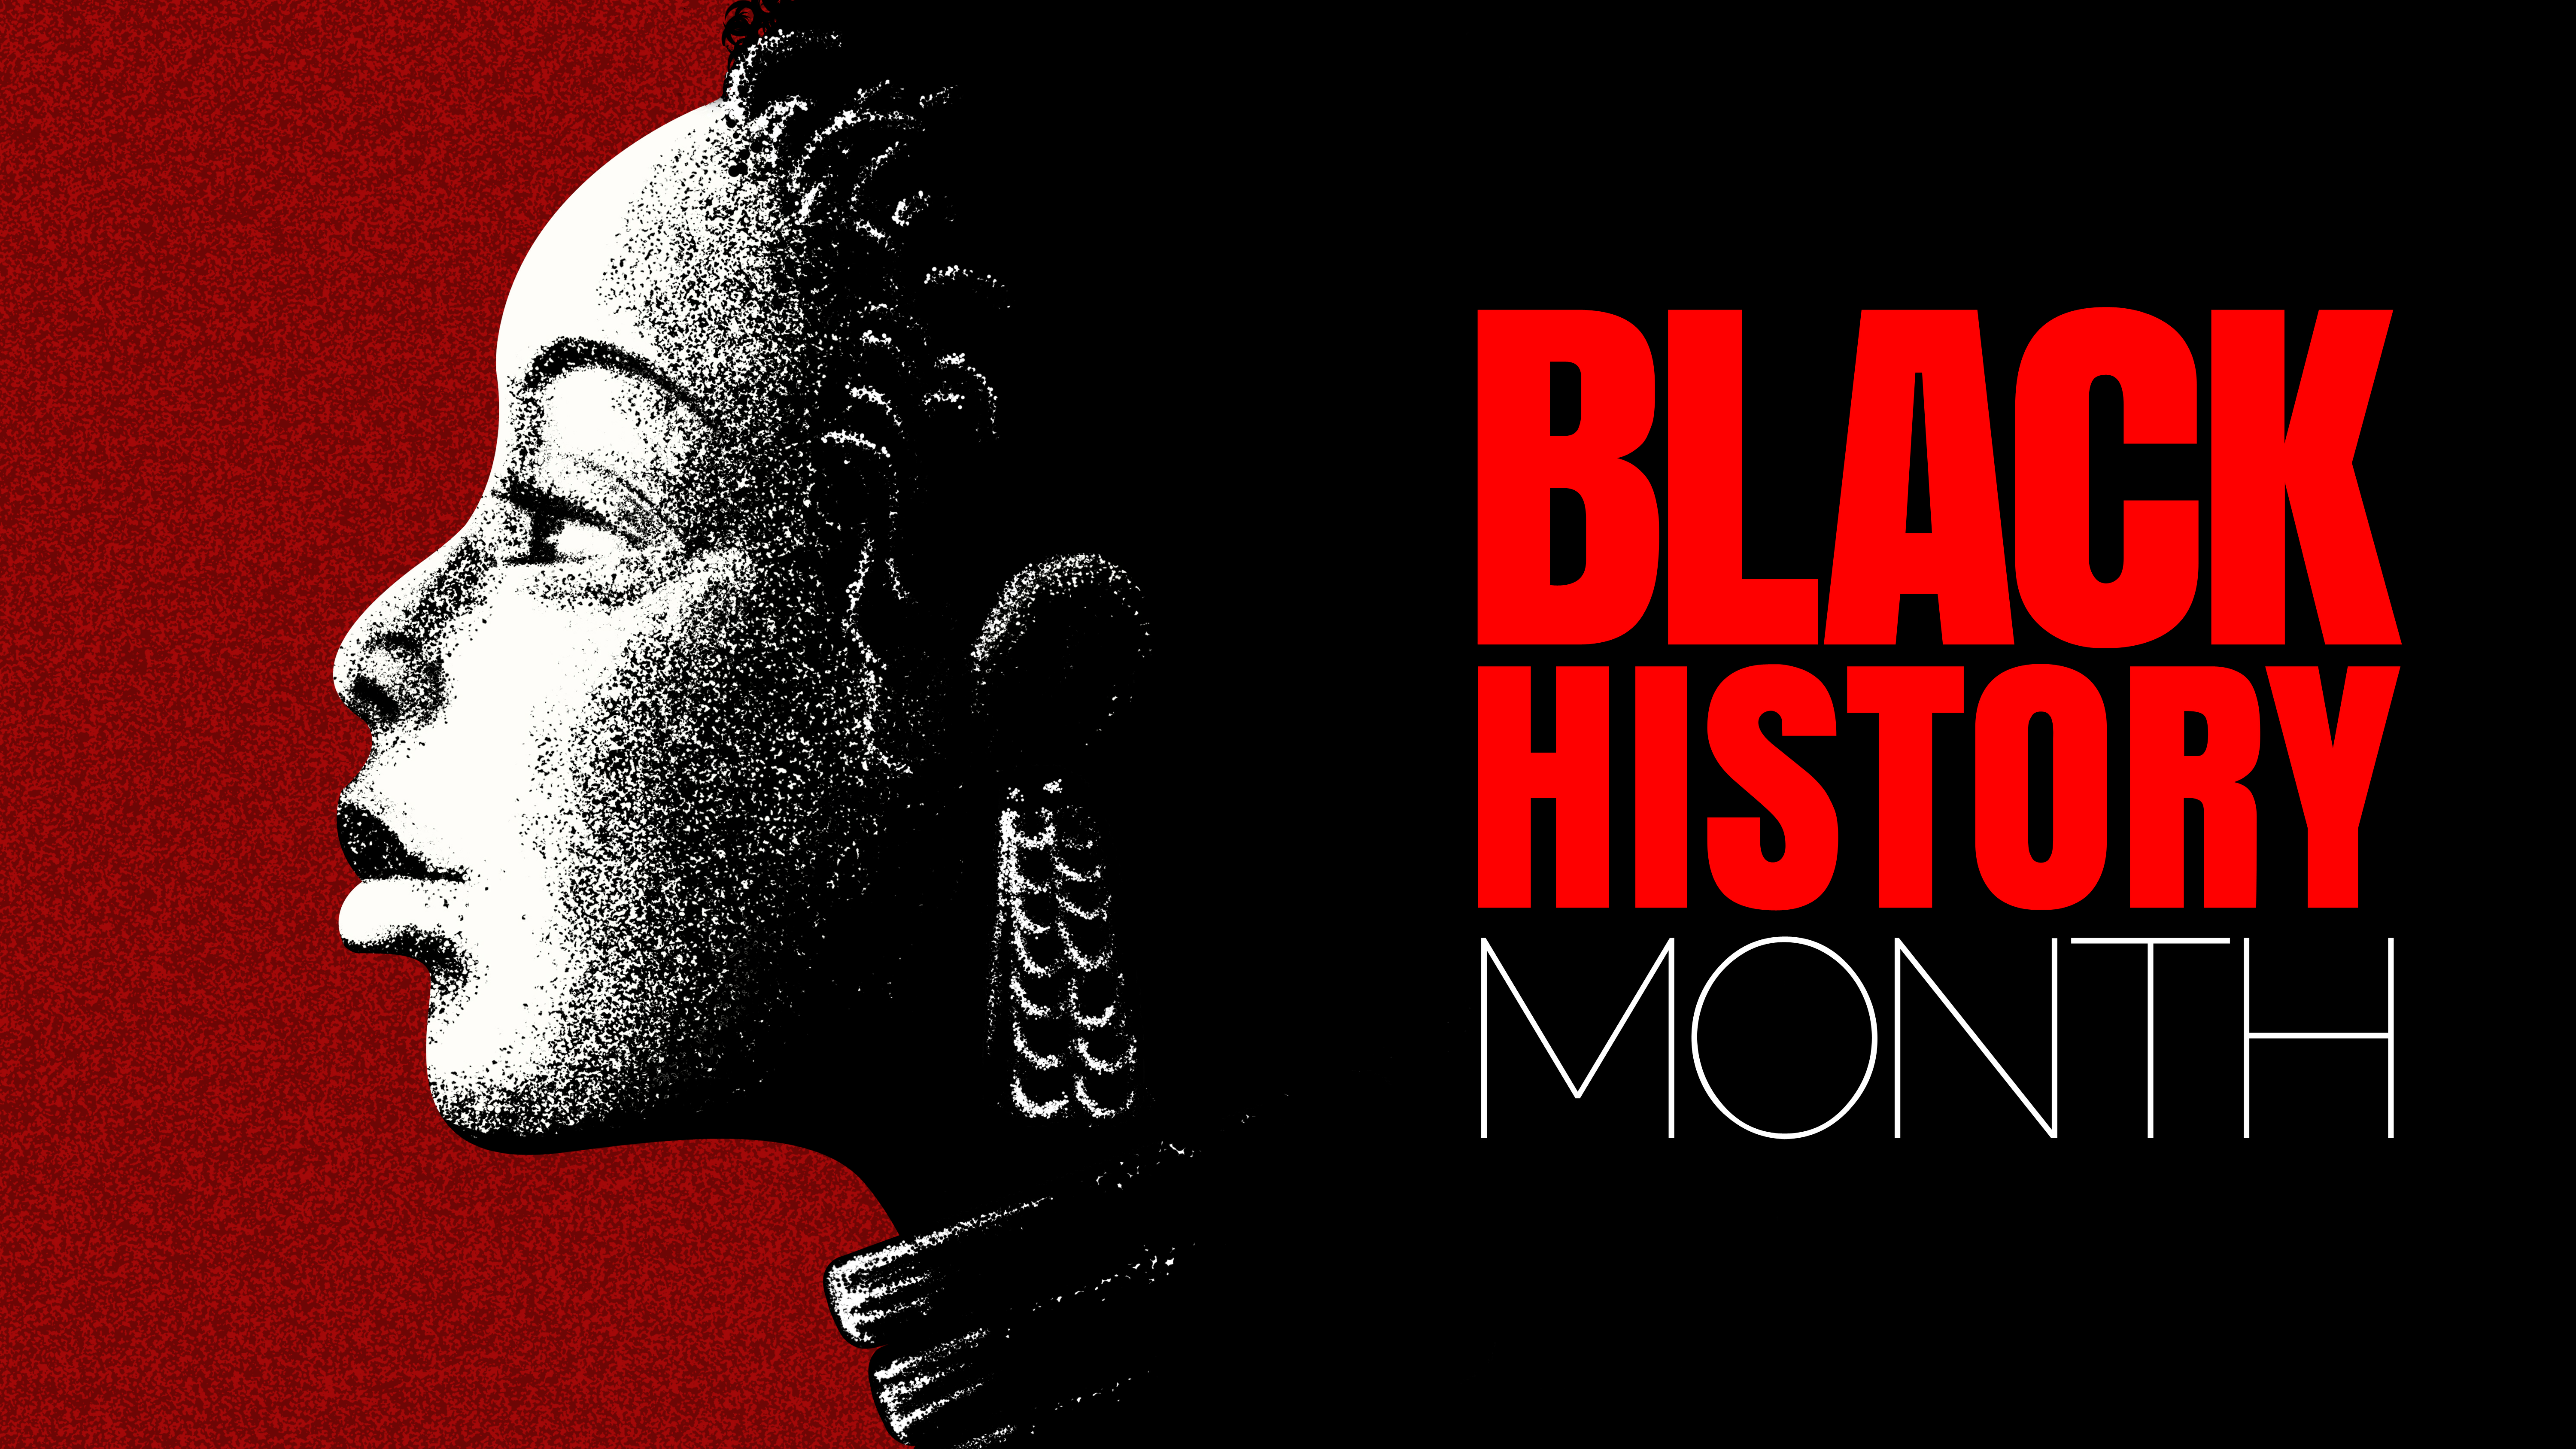 a short history of the black history month February marks black history month, a tribute to african-american men and women who have made significant contributions to america and the rest of the world in the fields of law, science, politics.